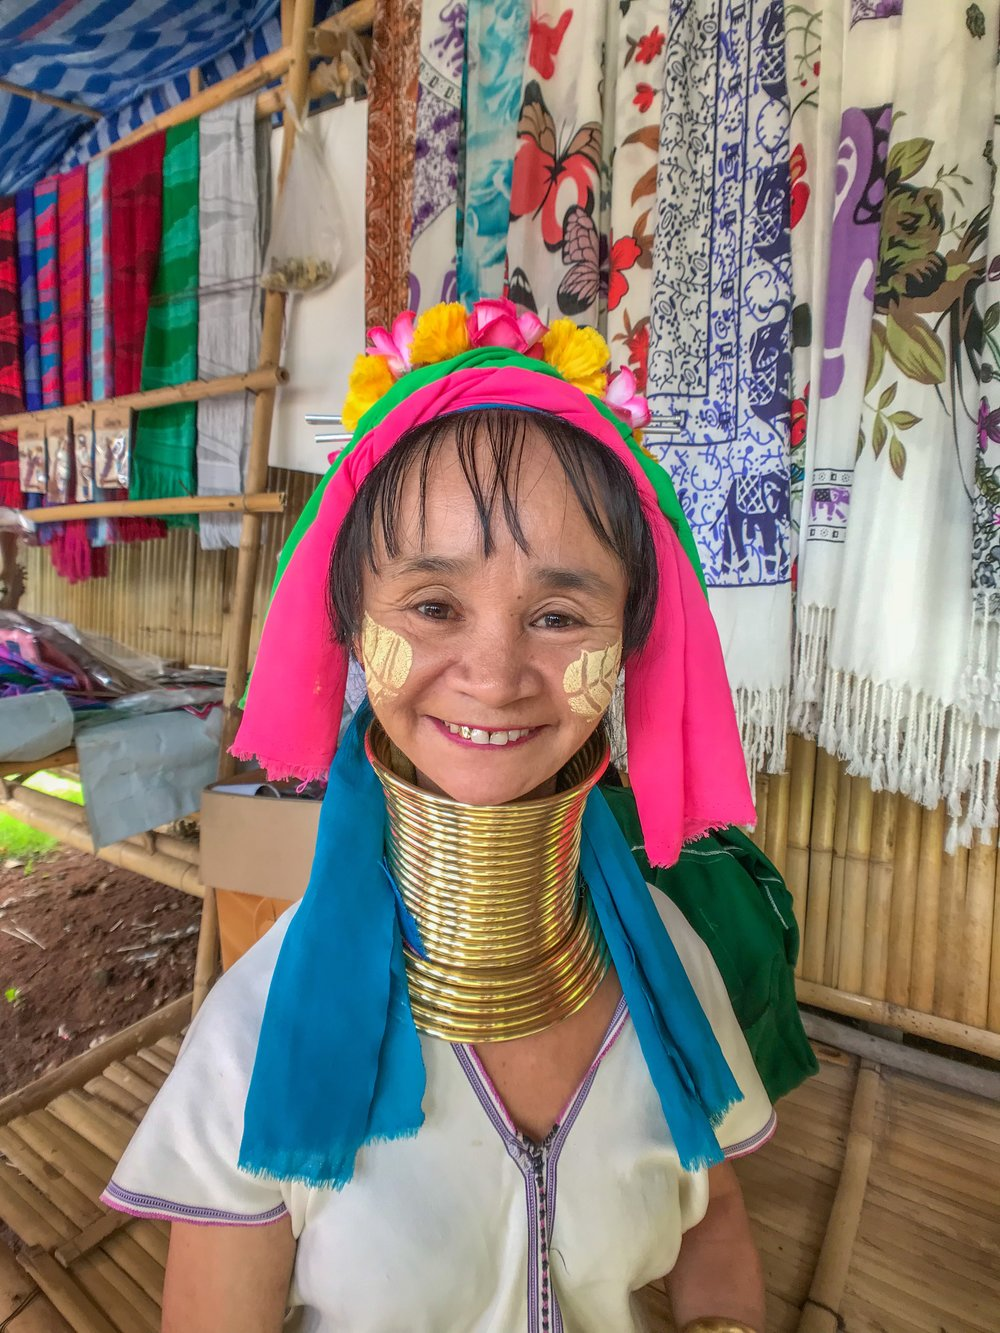 Many Karen women appear to love meeting tourists in the Long Neck Village